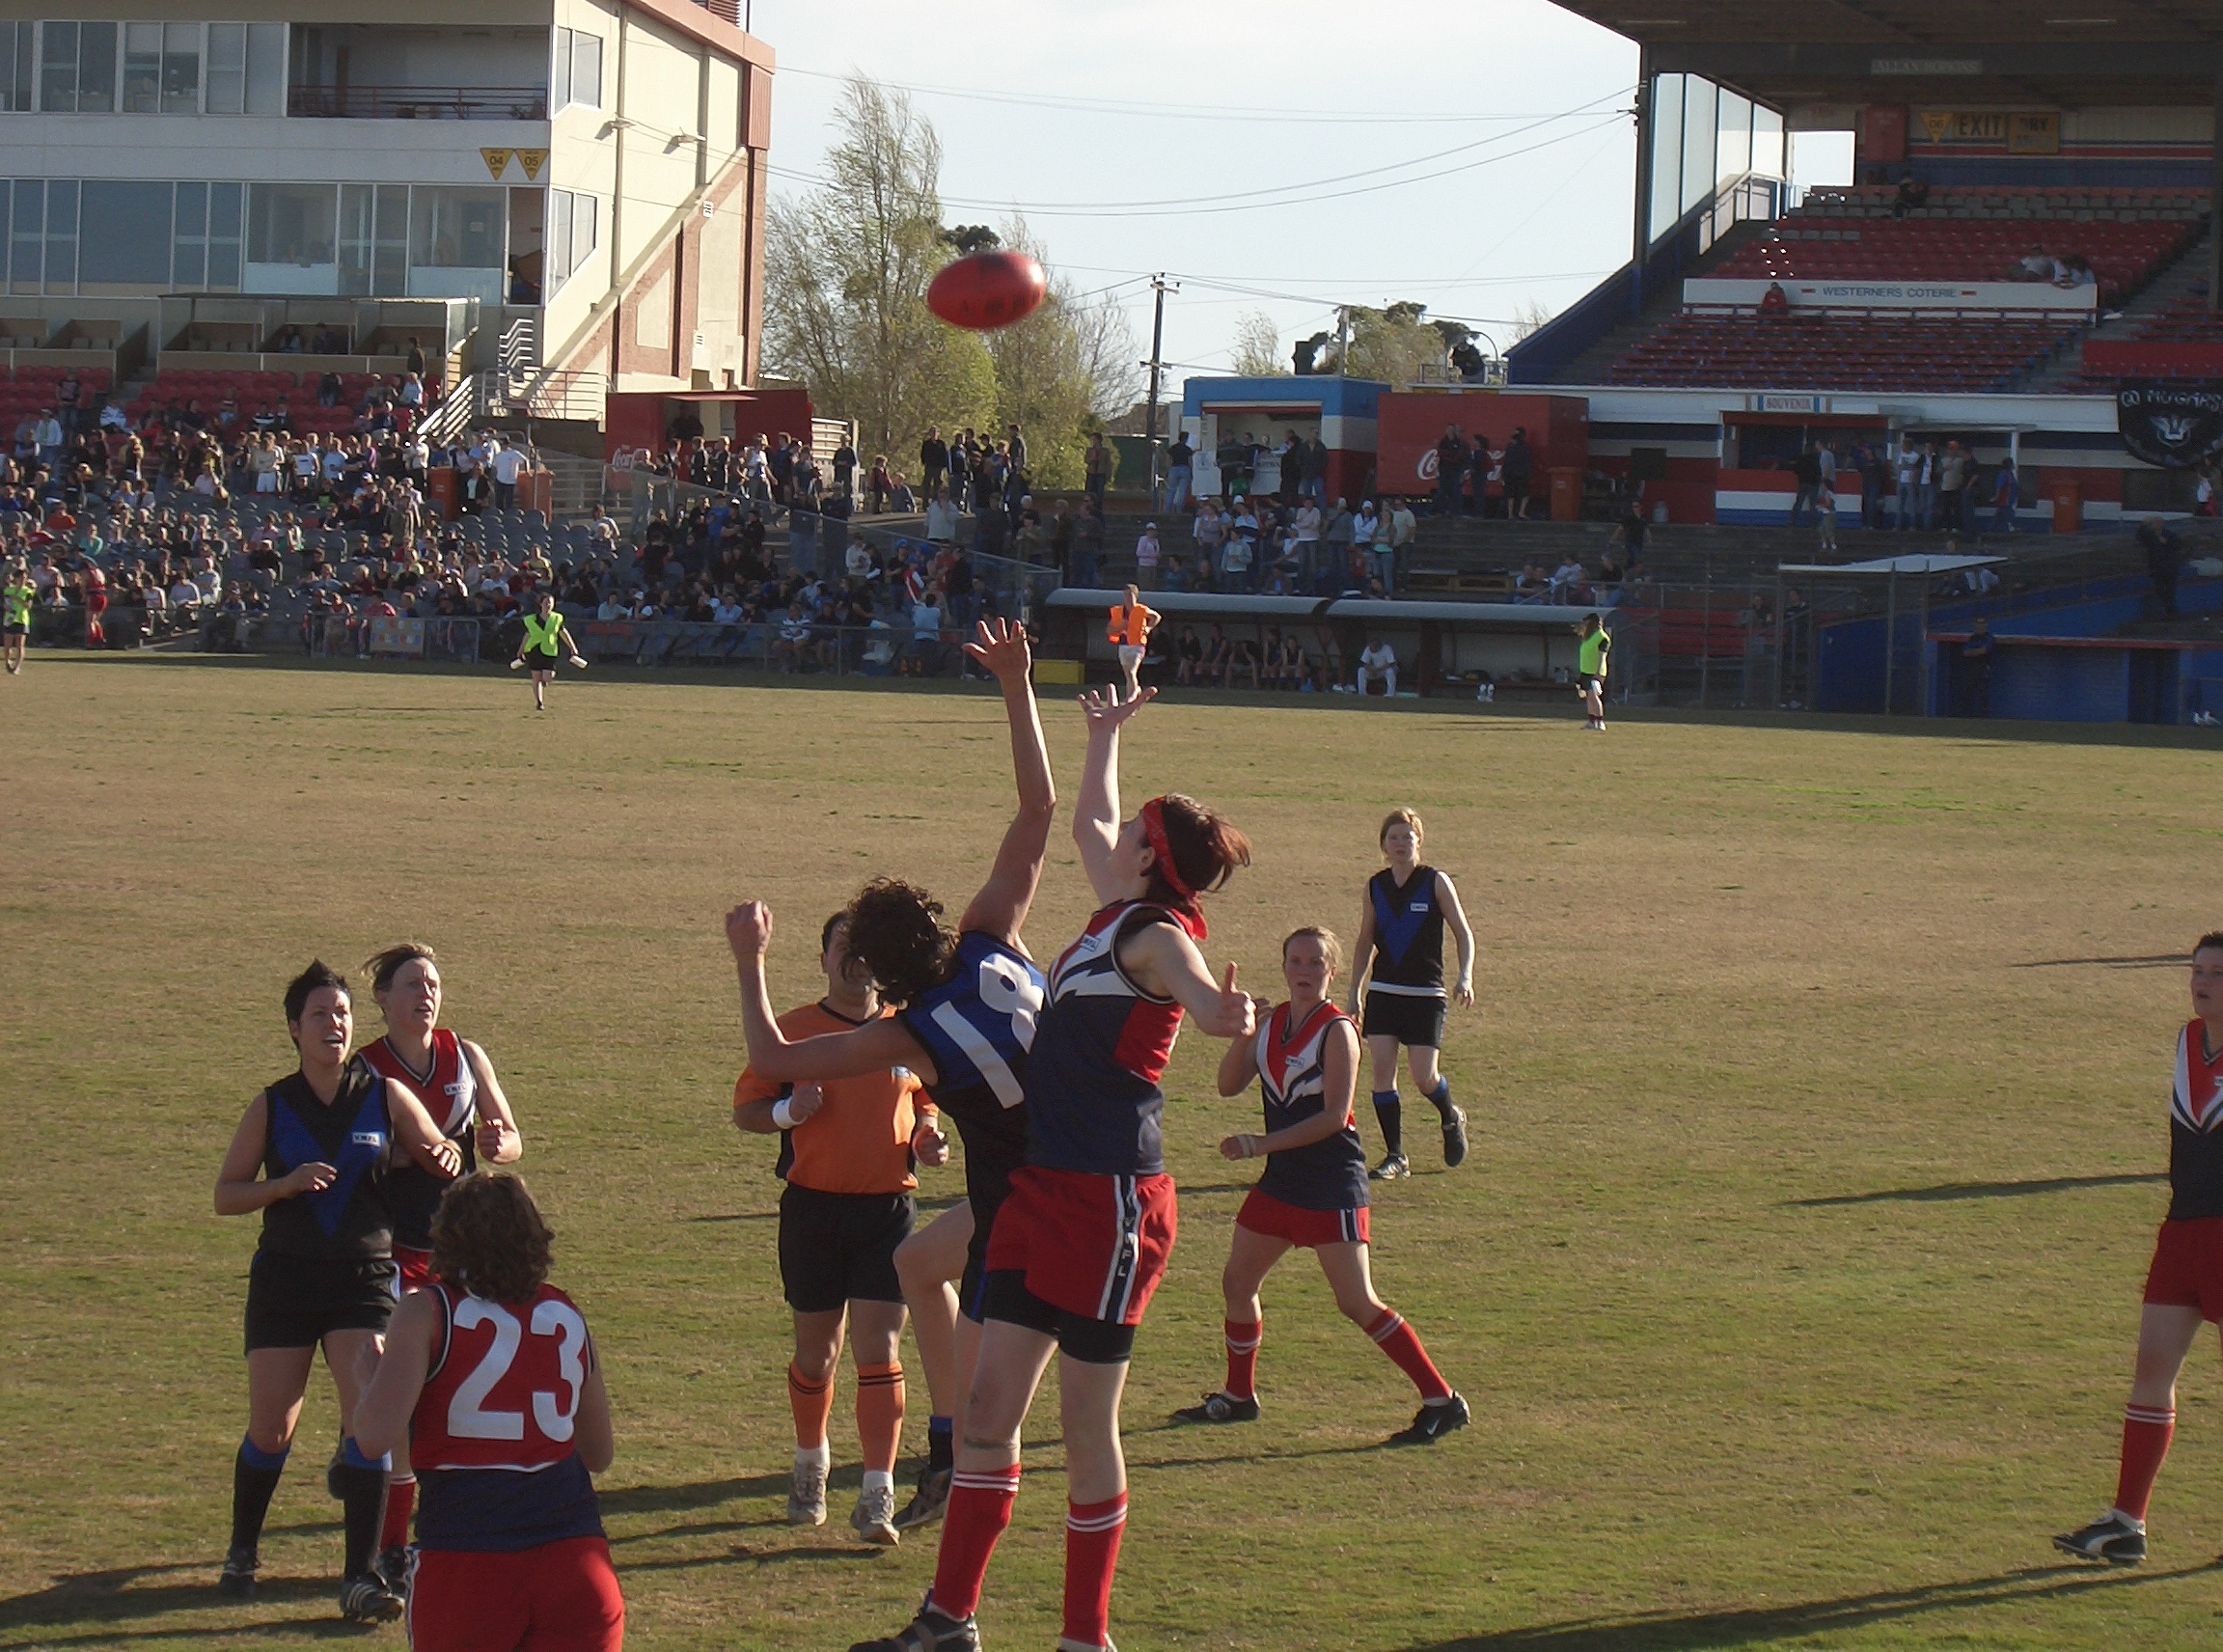 The Grand Final of the Victorian Women's Football League, Division 1. Melbourne University MUGARS (black and blue) def. Darebin Falcons.